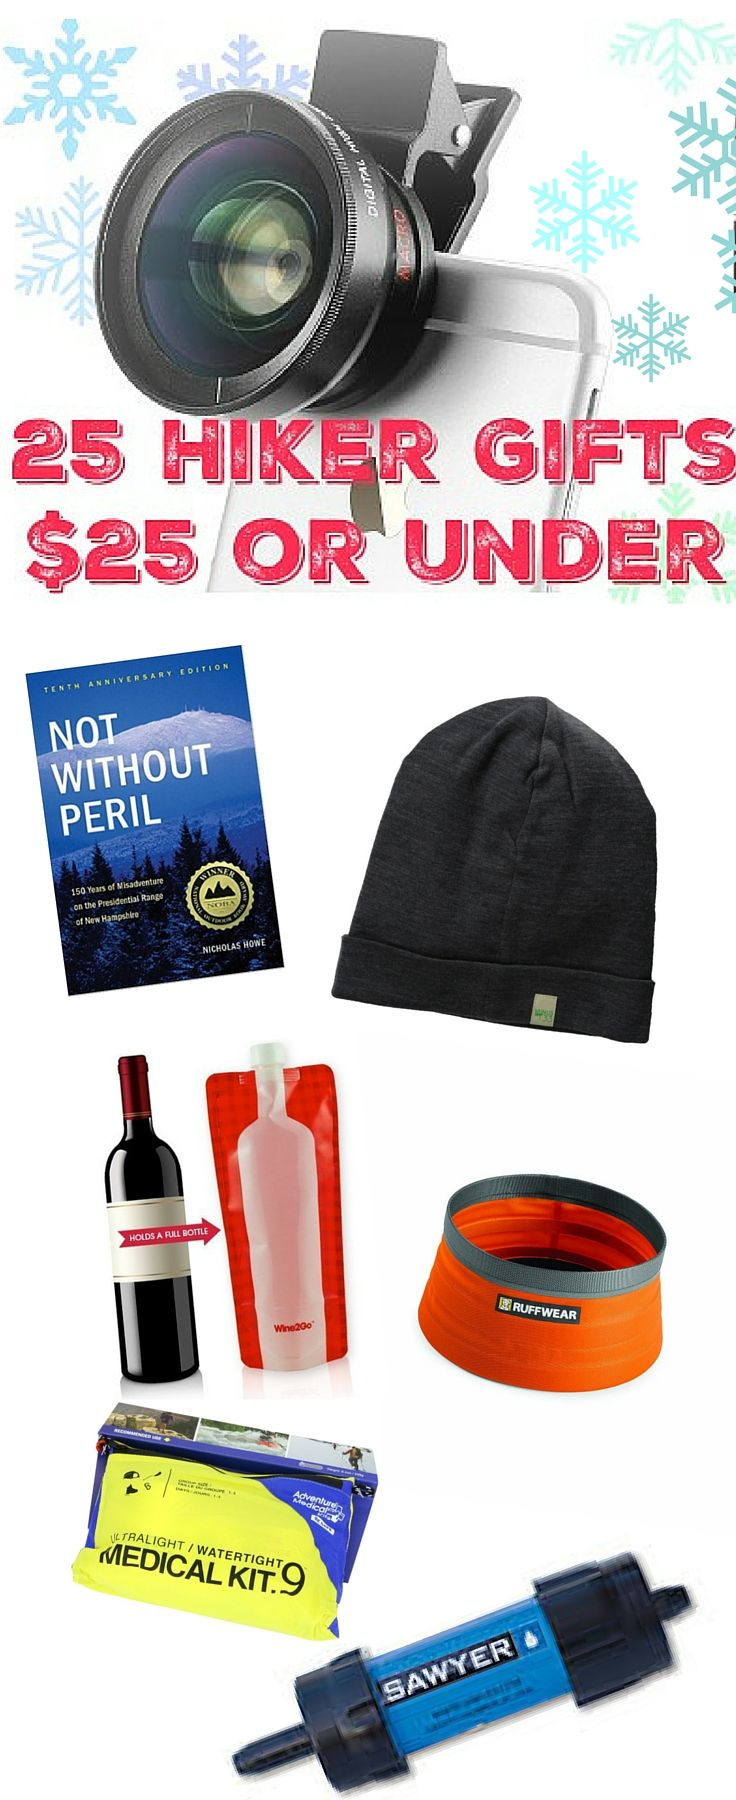 Great gift ideas for hikers all $25 or less! - trailtosummit.com